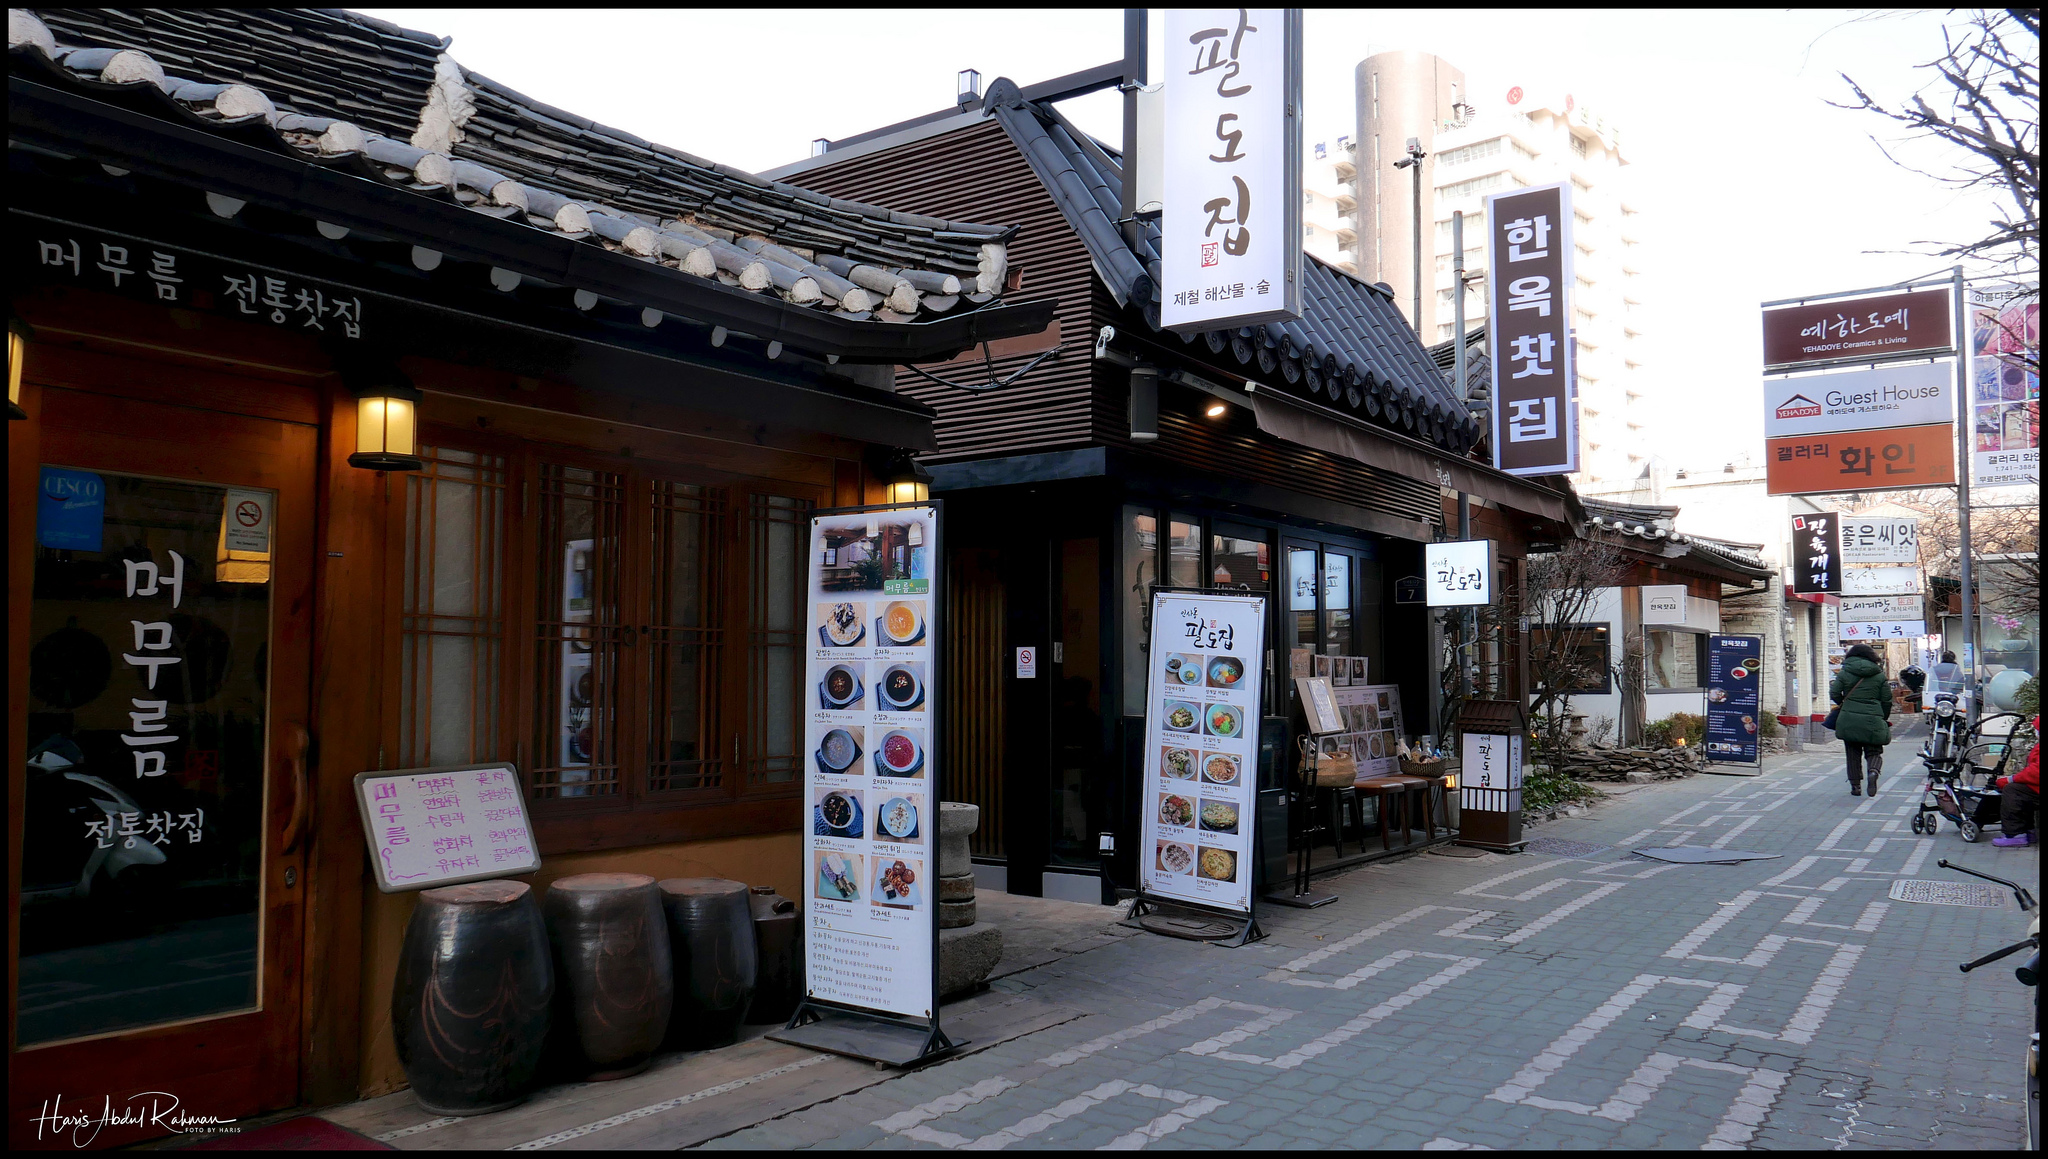 The teahouses to explore at Insadong